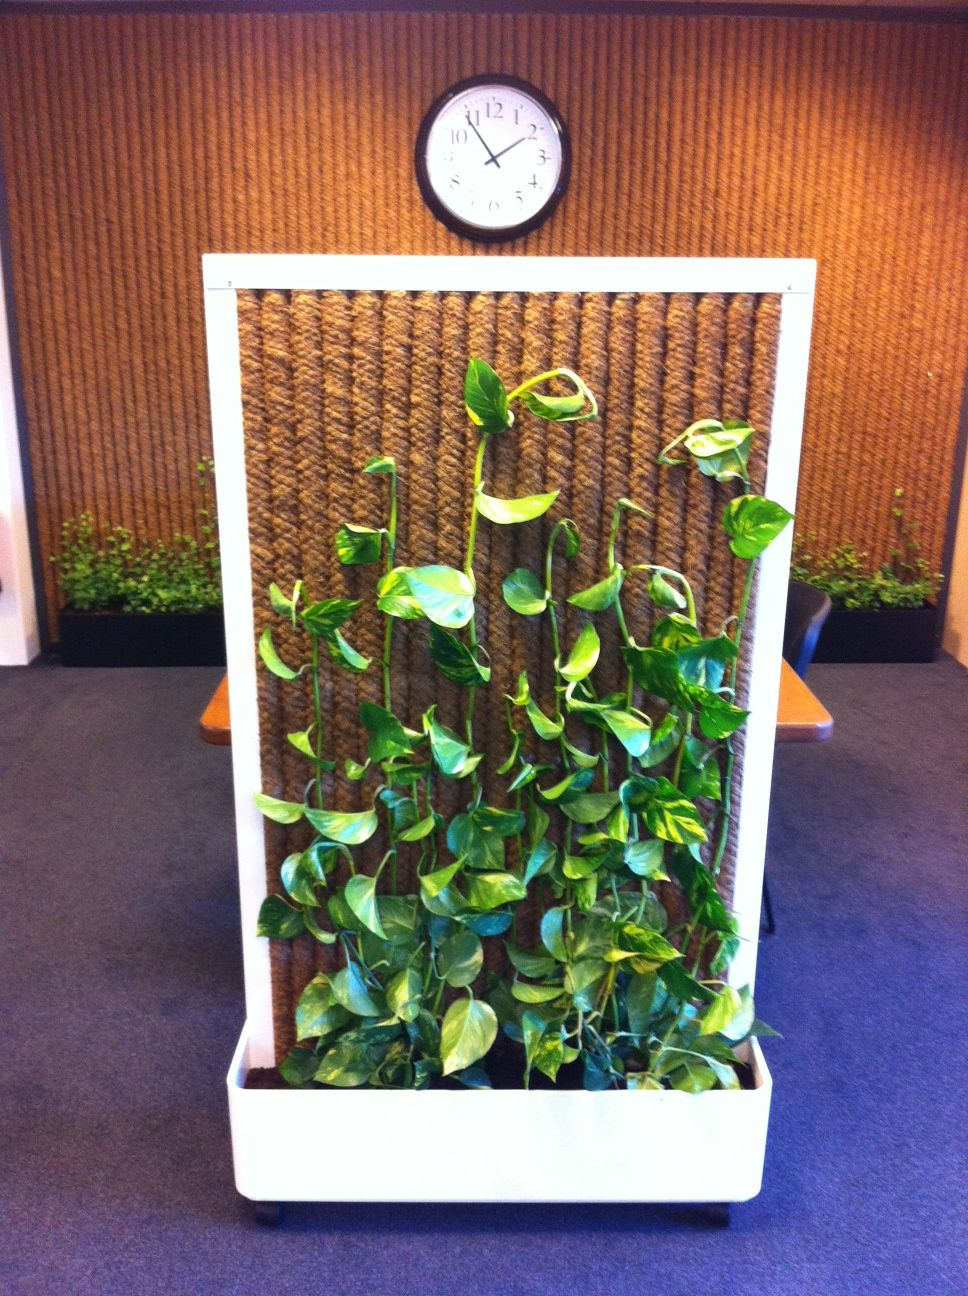 Kokowall Mobile Office Divider Made Of Natural Cocos Fibre And A Steel U Frame Skindaspus Is Growing On The Cocos For More Information See Kokosystems Nl